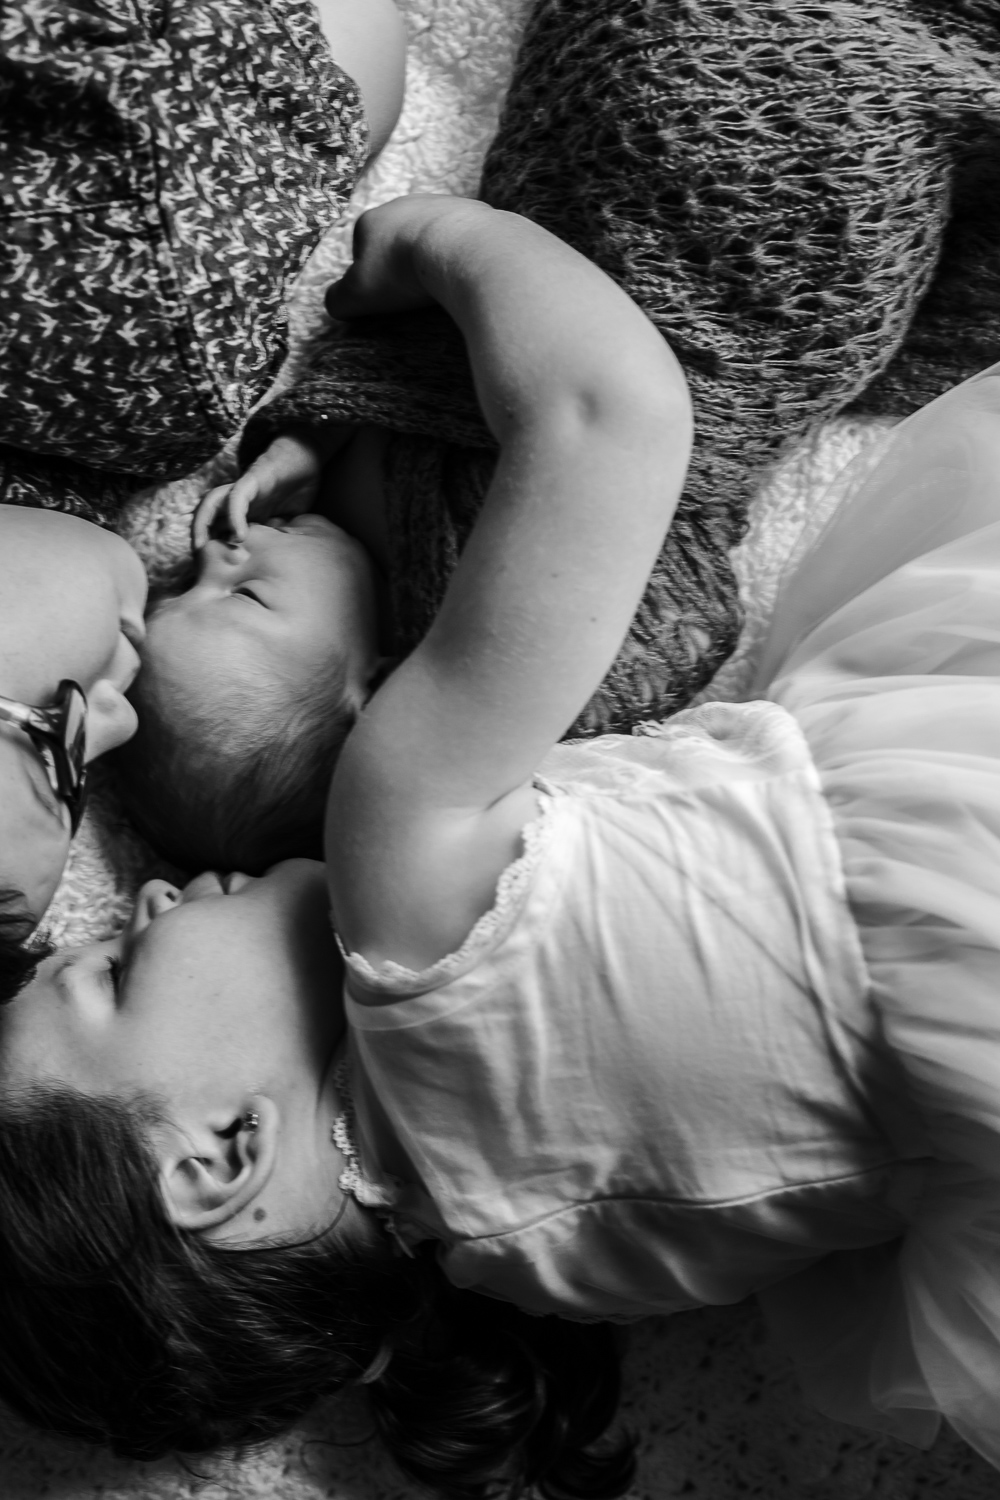 sibling cuddles during in home lifestyle family photography session at home location in Mornington